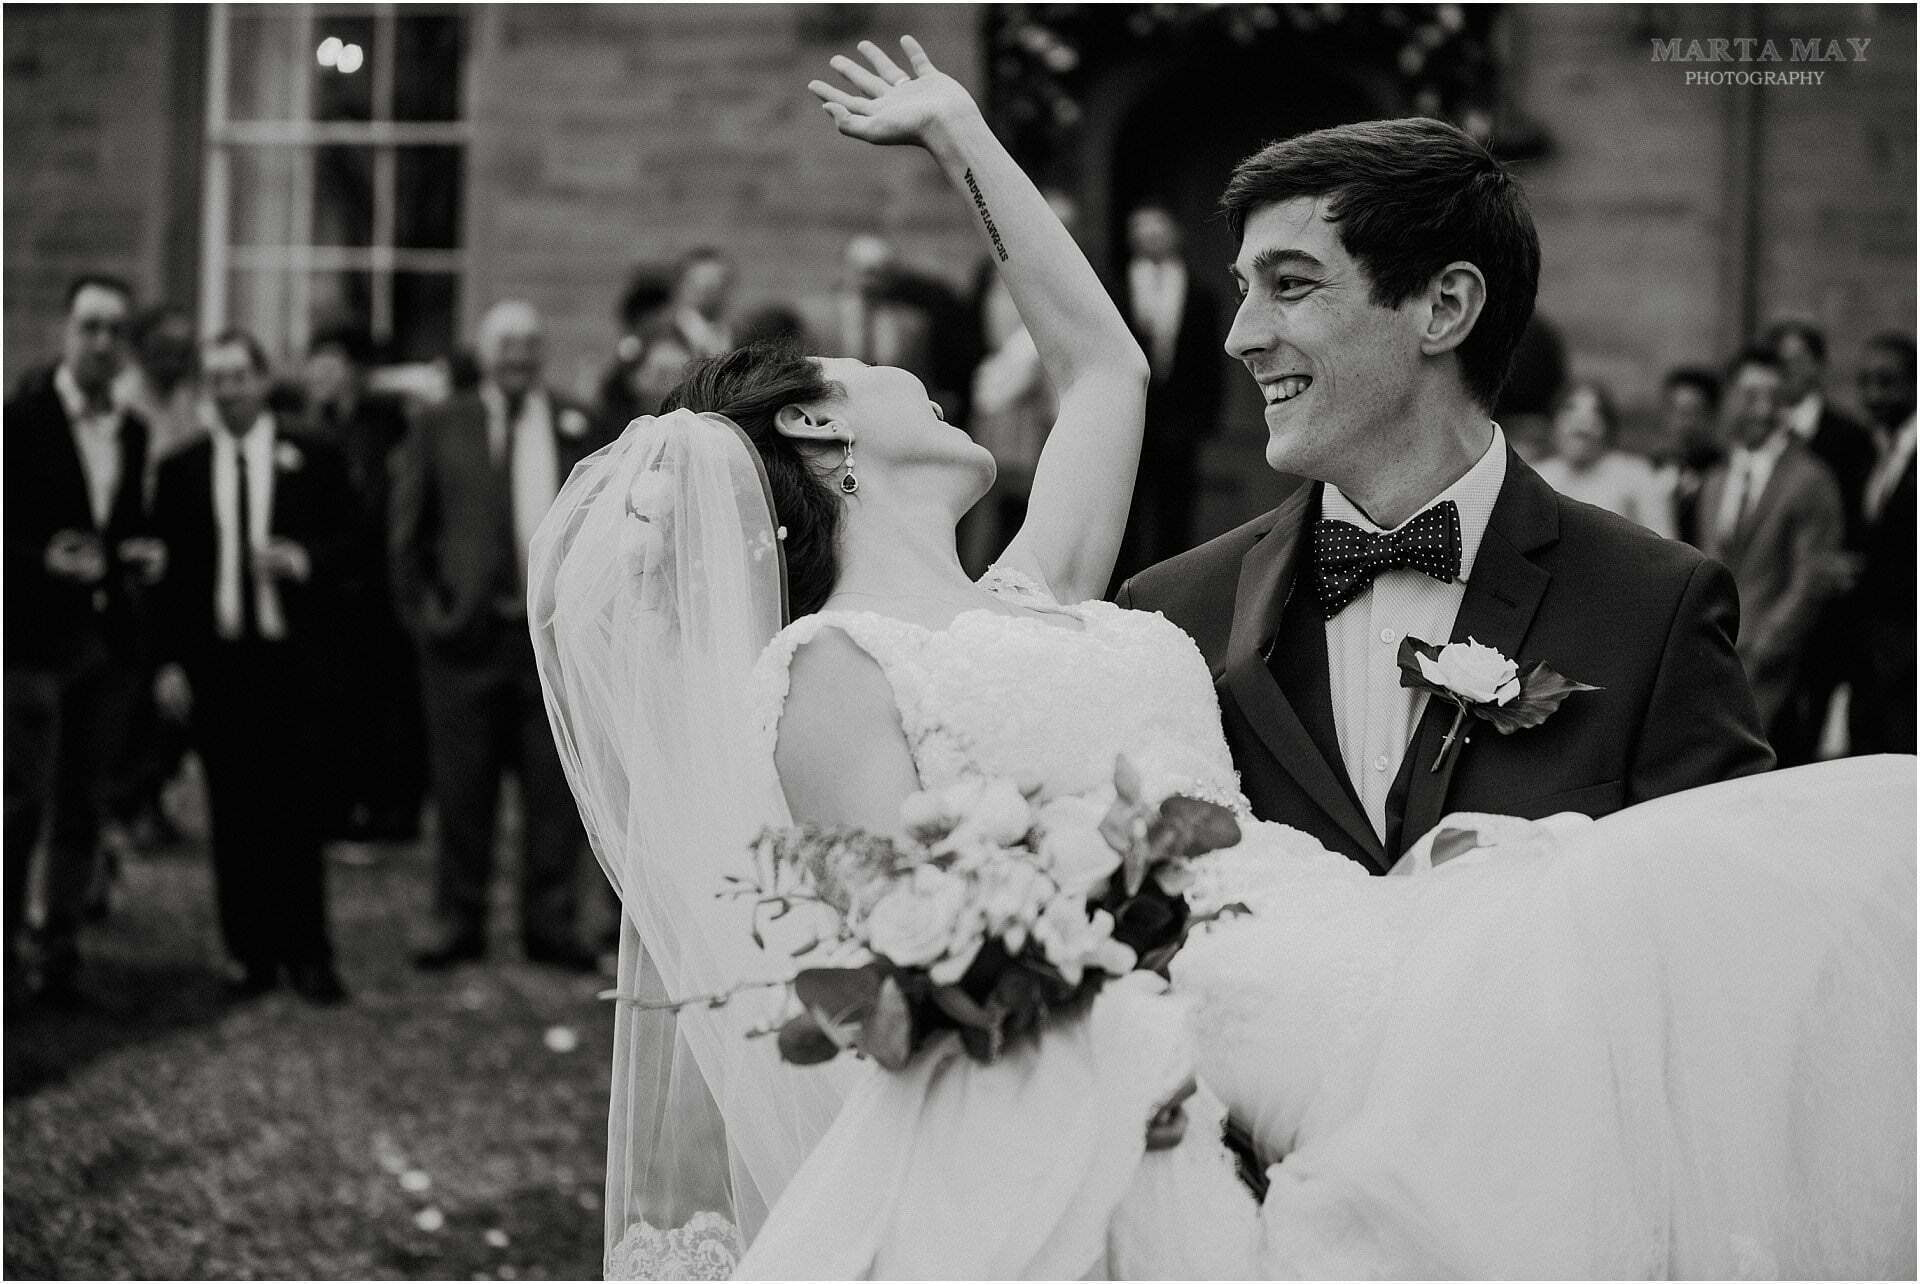 Lemore Manor wedding photographer Hereford